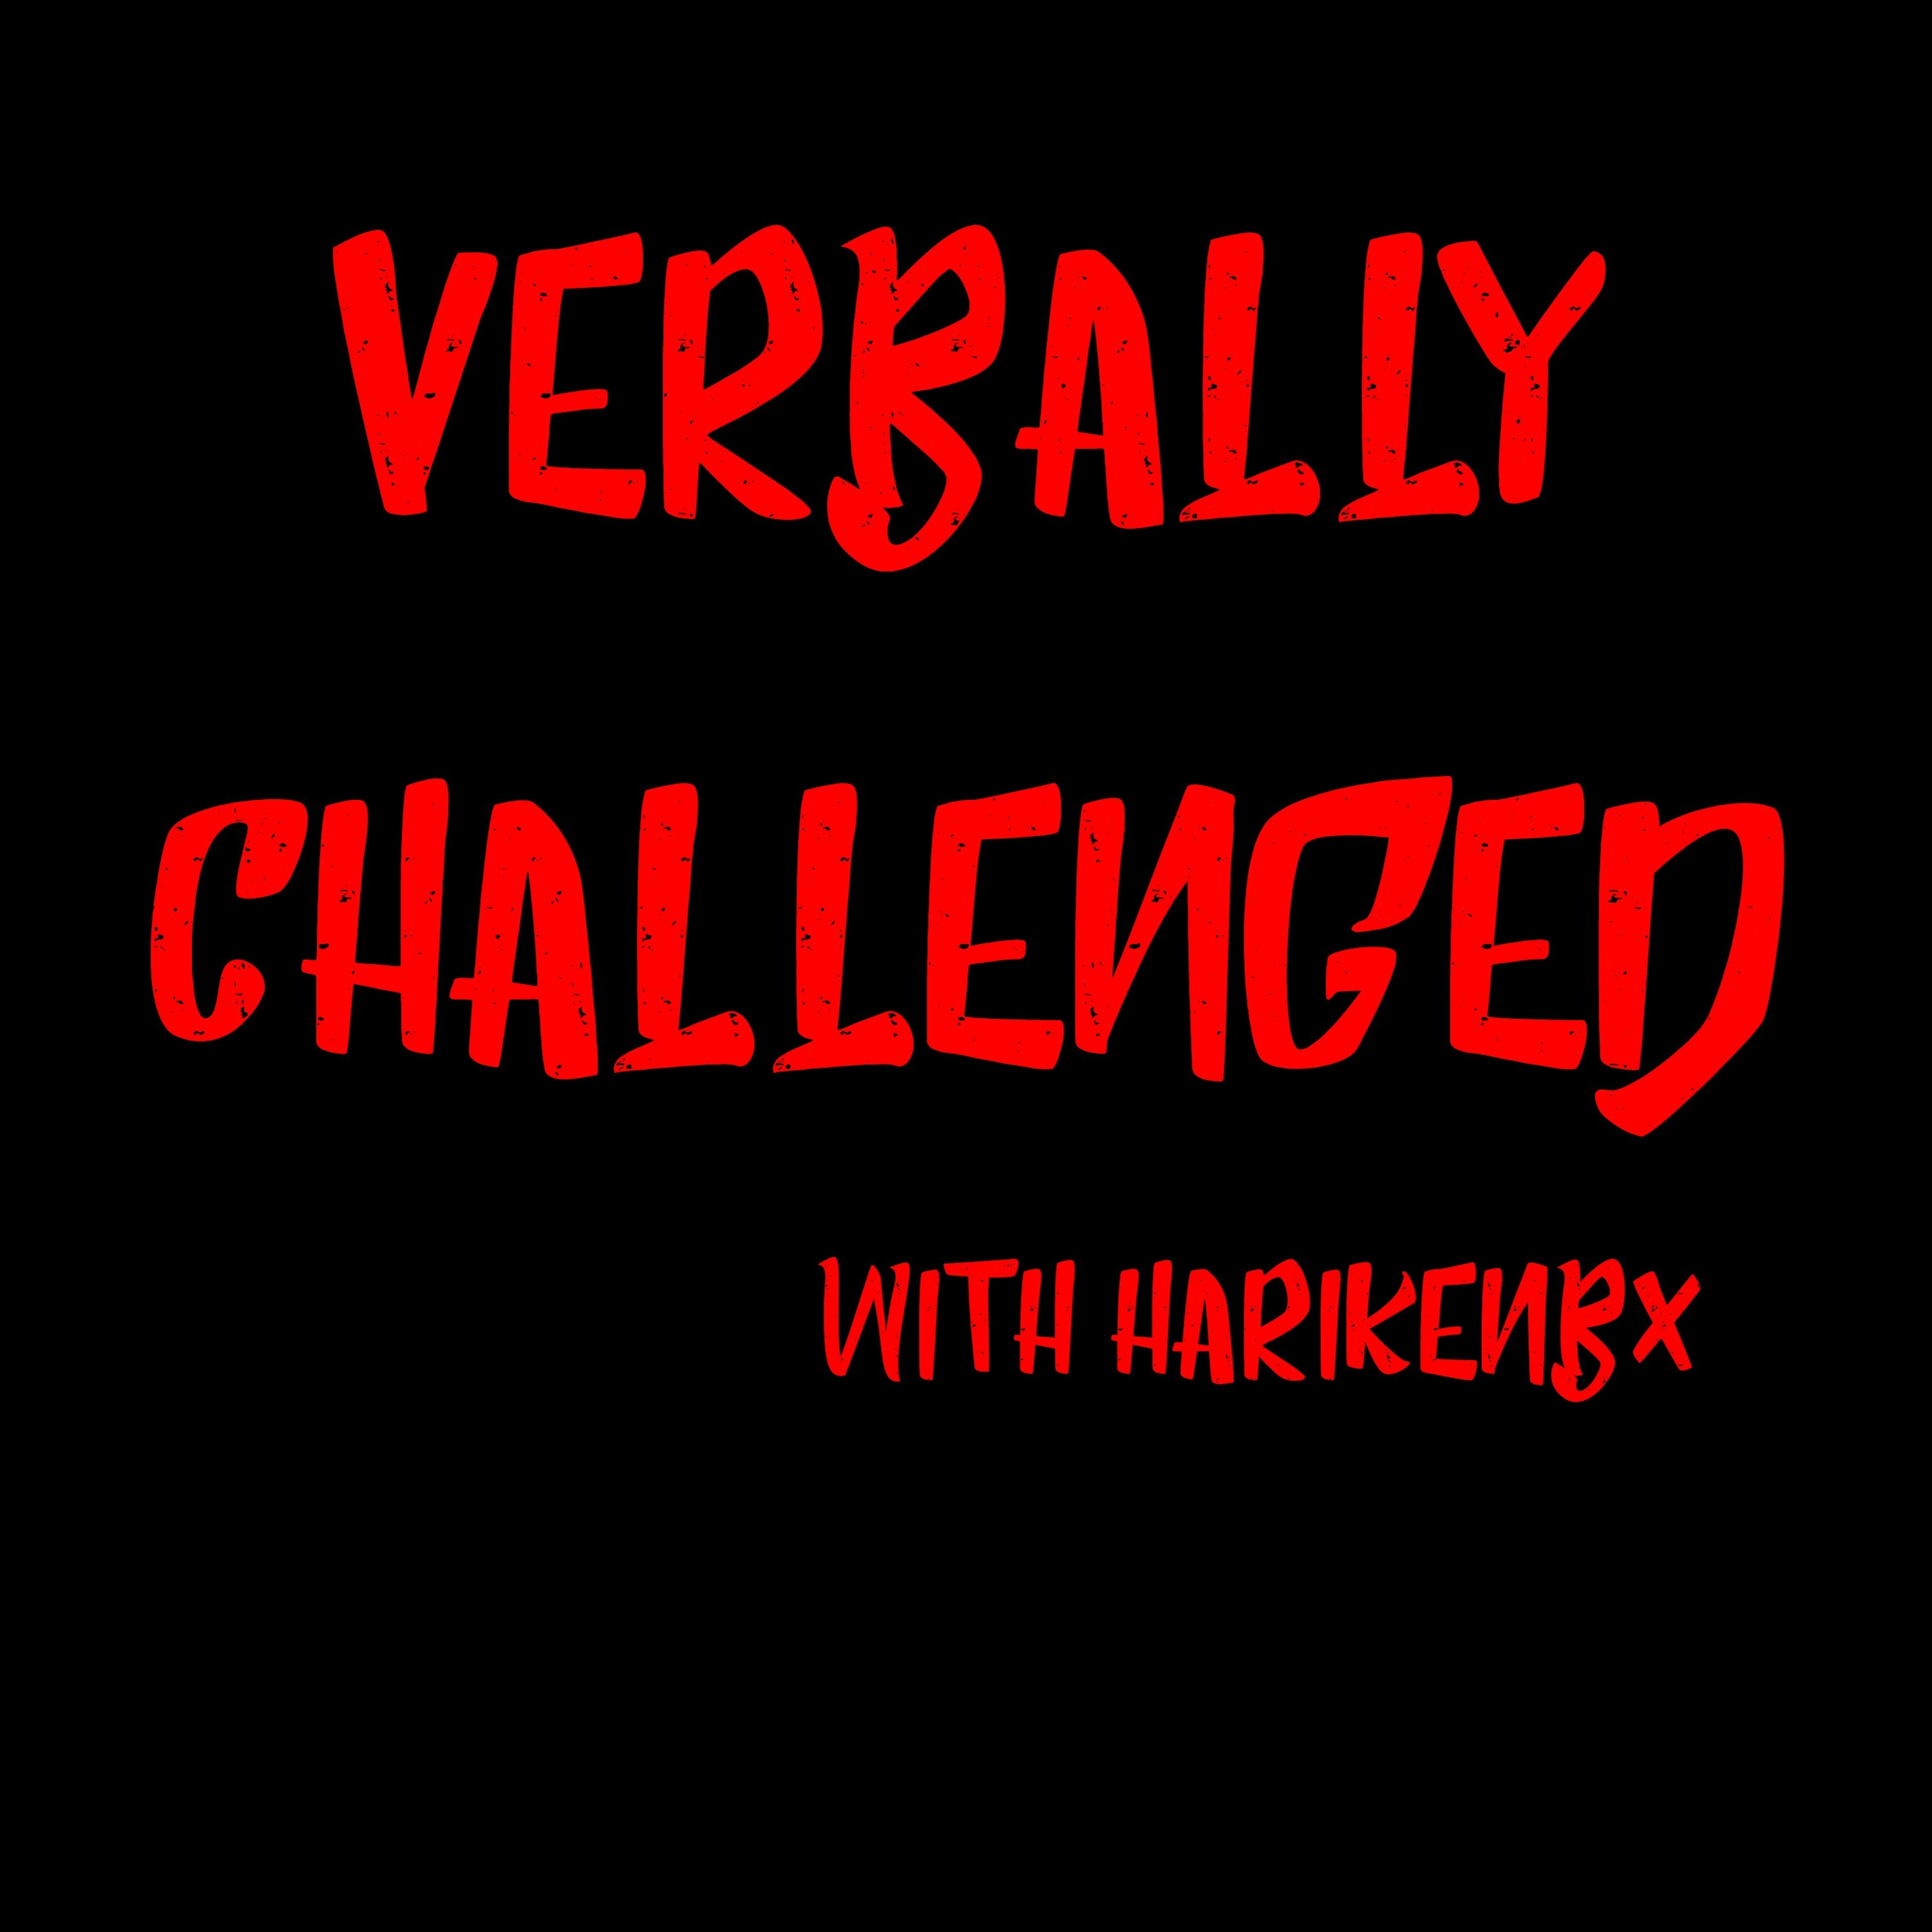 Verbally Challenged with HarikenBx